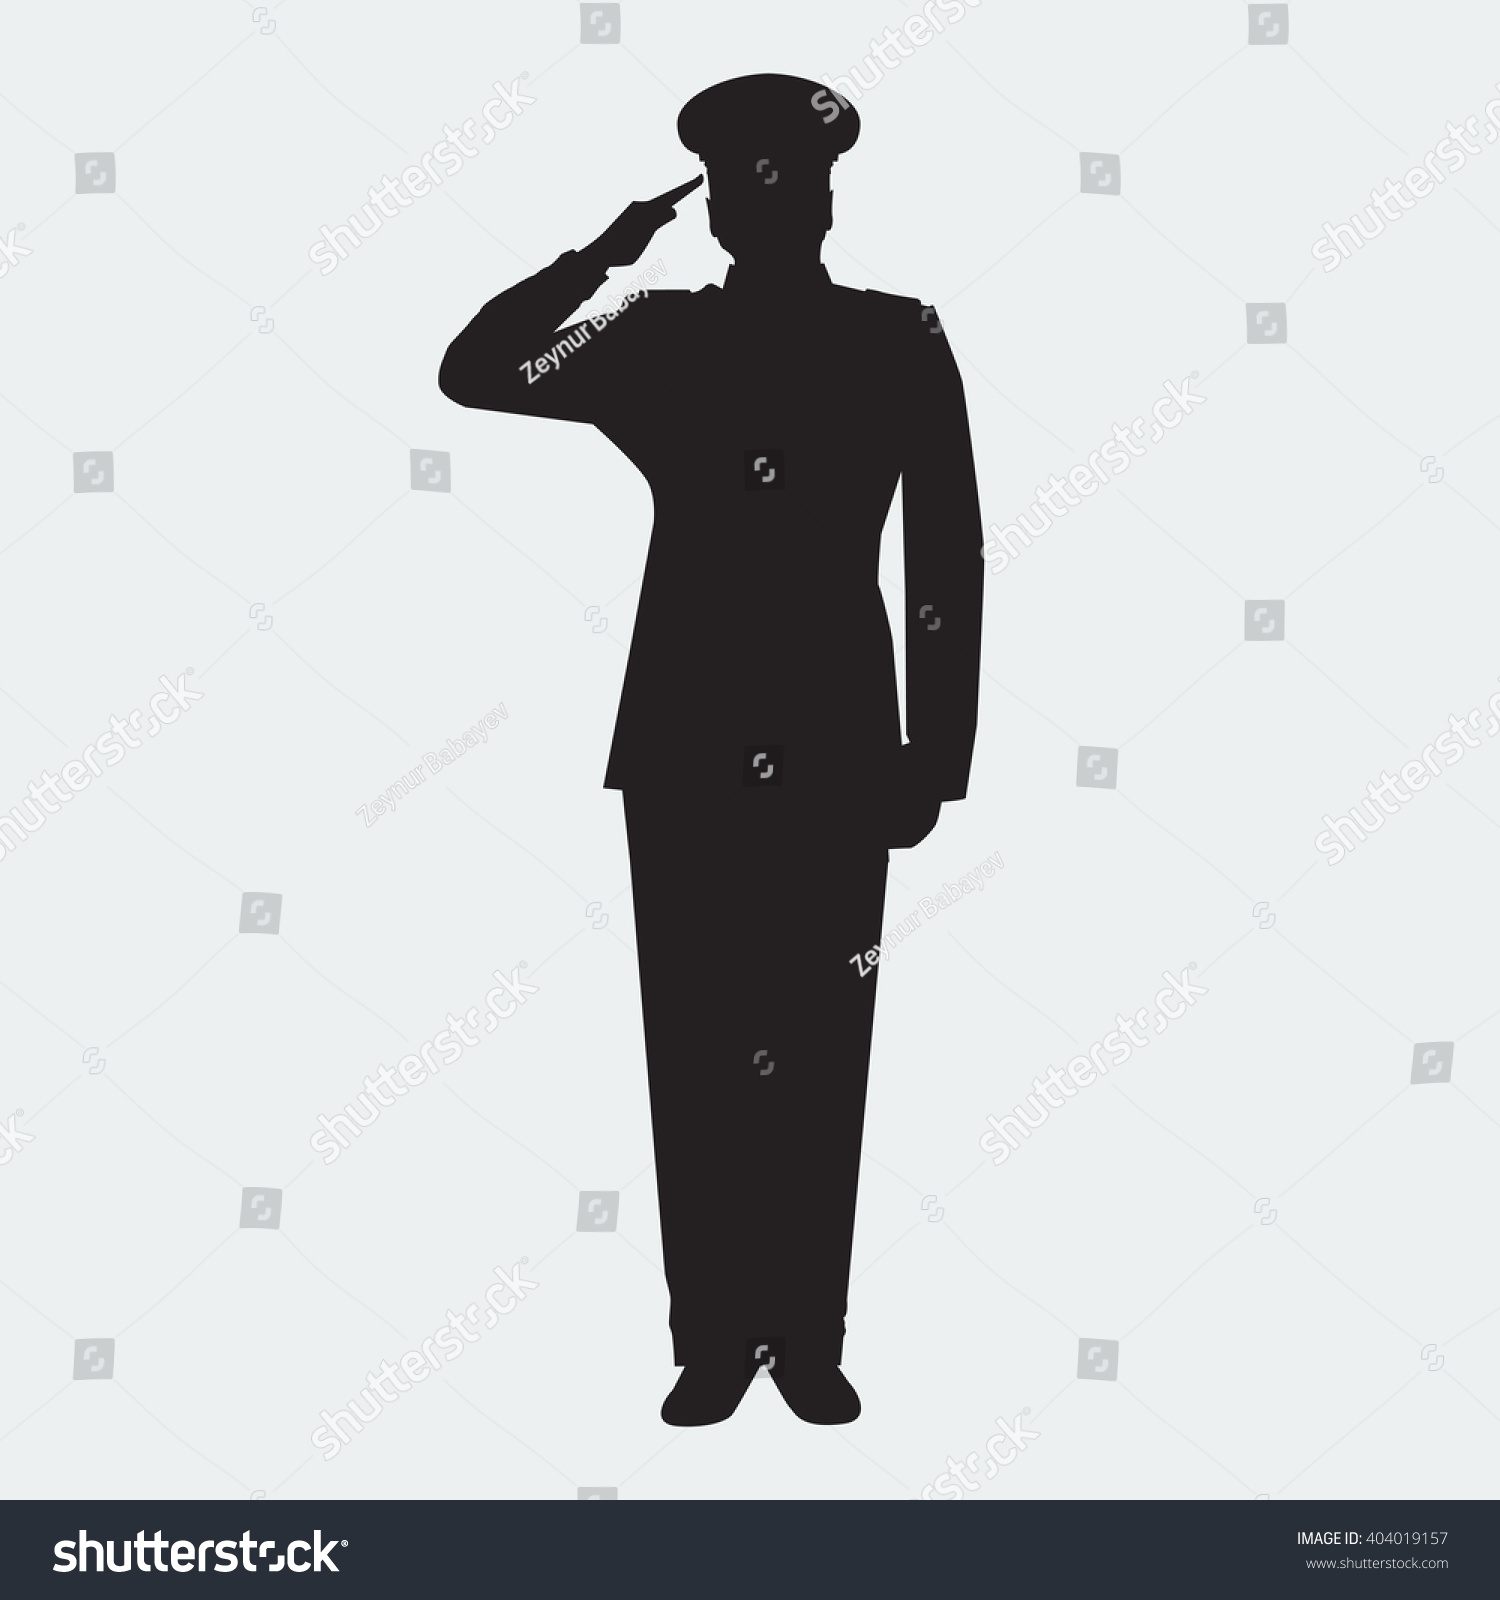 Illustrated Army General Silhouette With Hand Gesture ...